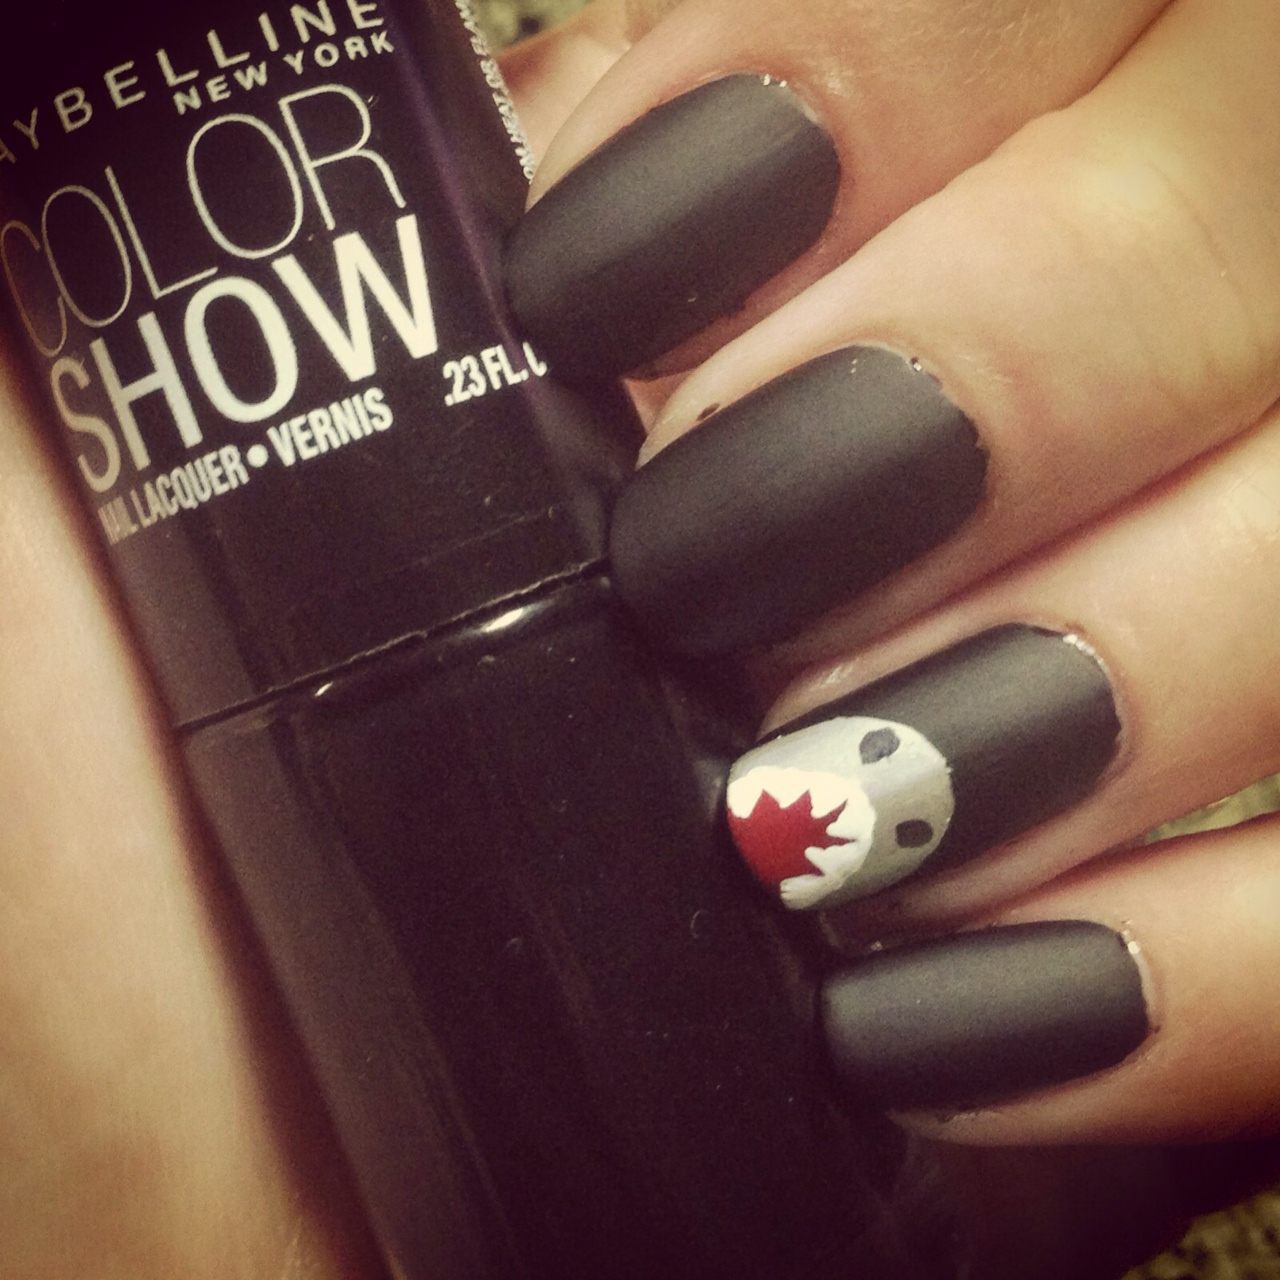 Manicure Monday: Shark Week | The Collabor-eight